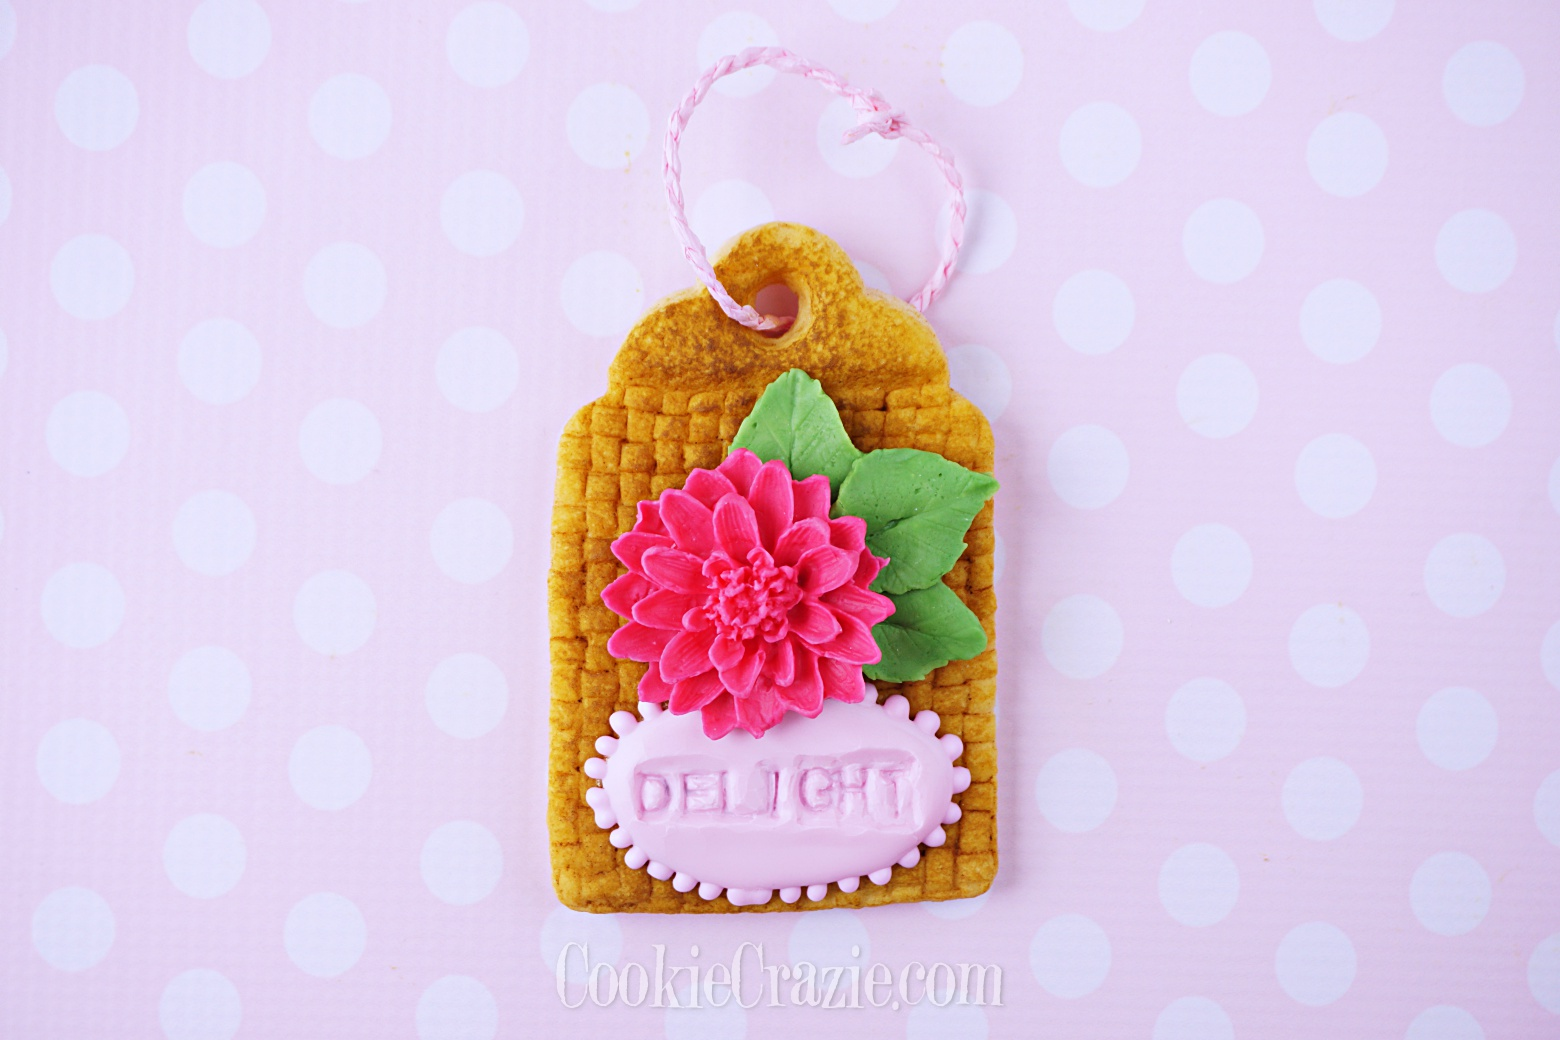 Basket Gift Tag Decorated Sugar Cookie YouTube video  HERE